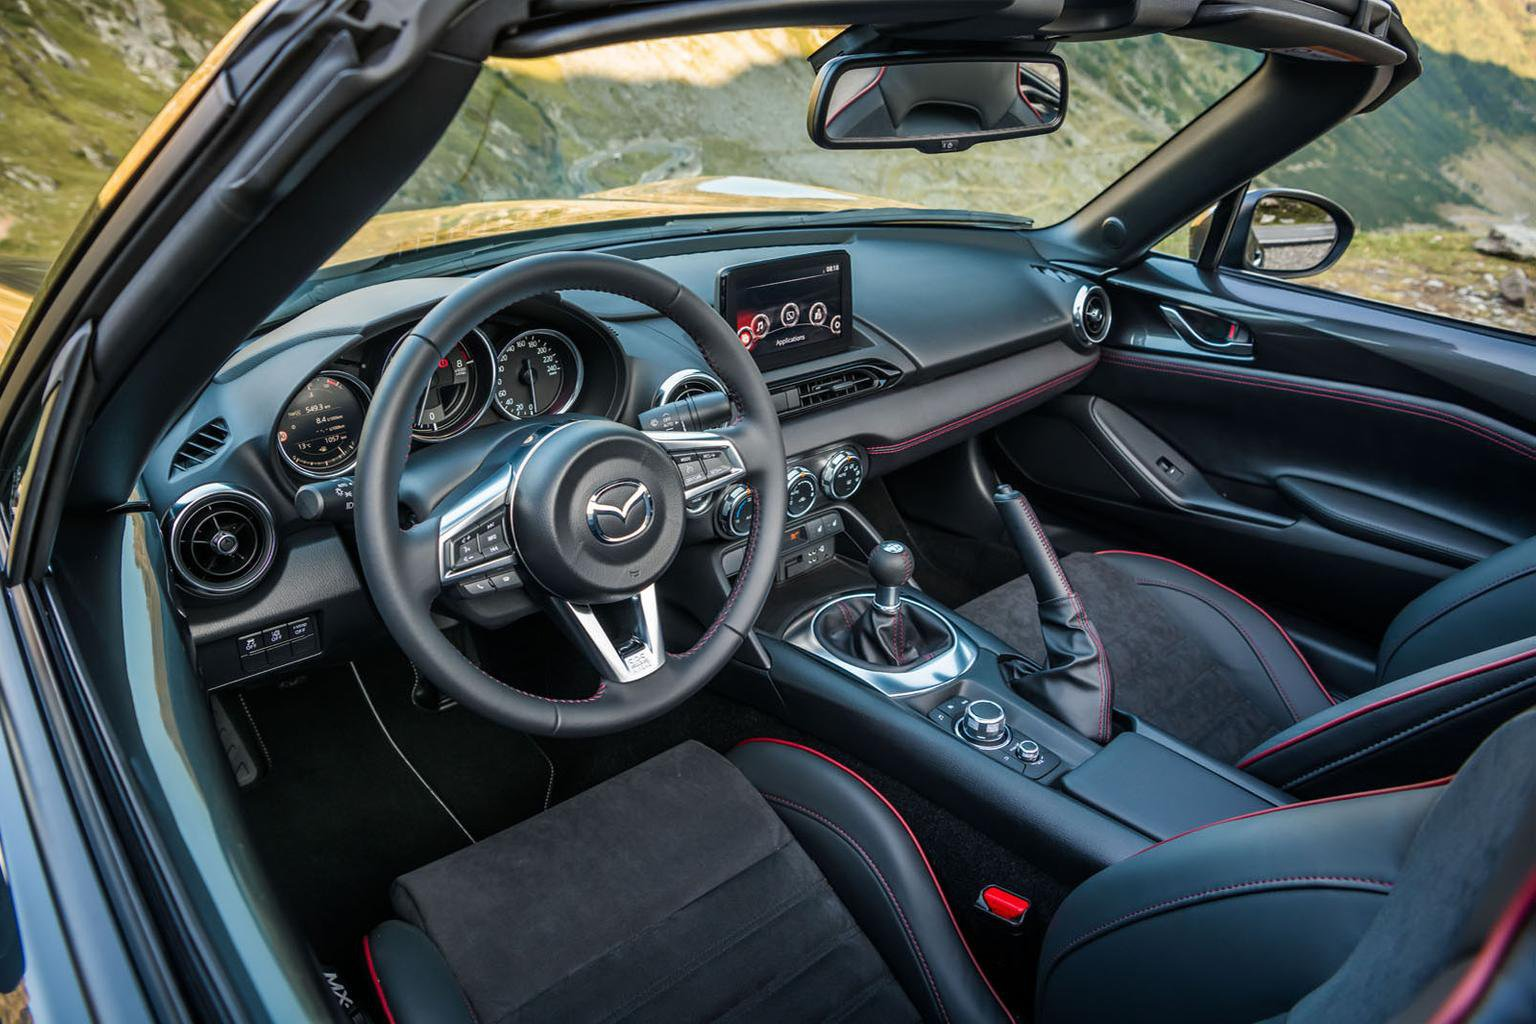 2018 Mazda MX-5 review - price, specs and release date